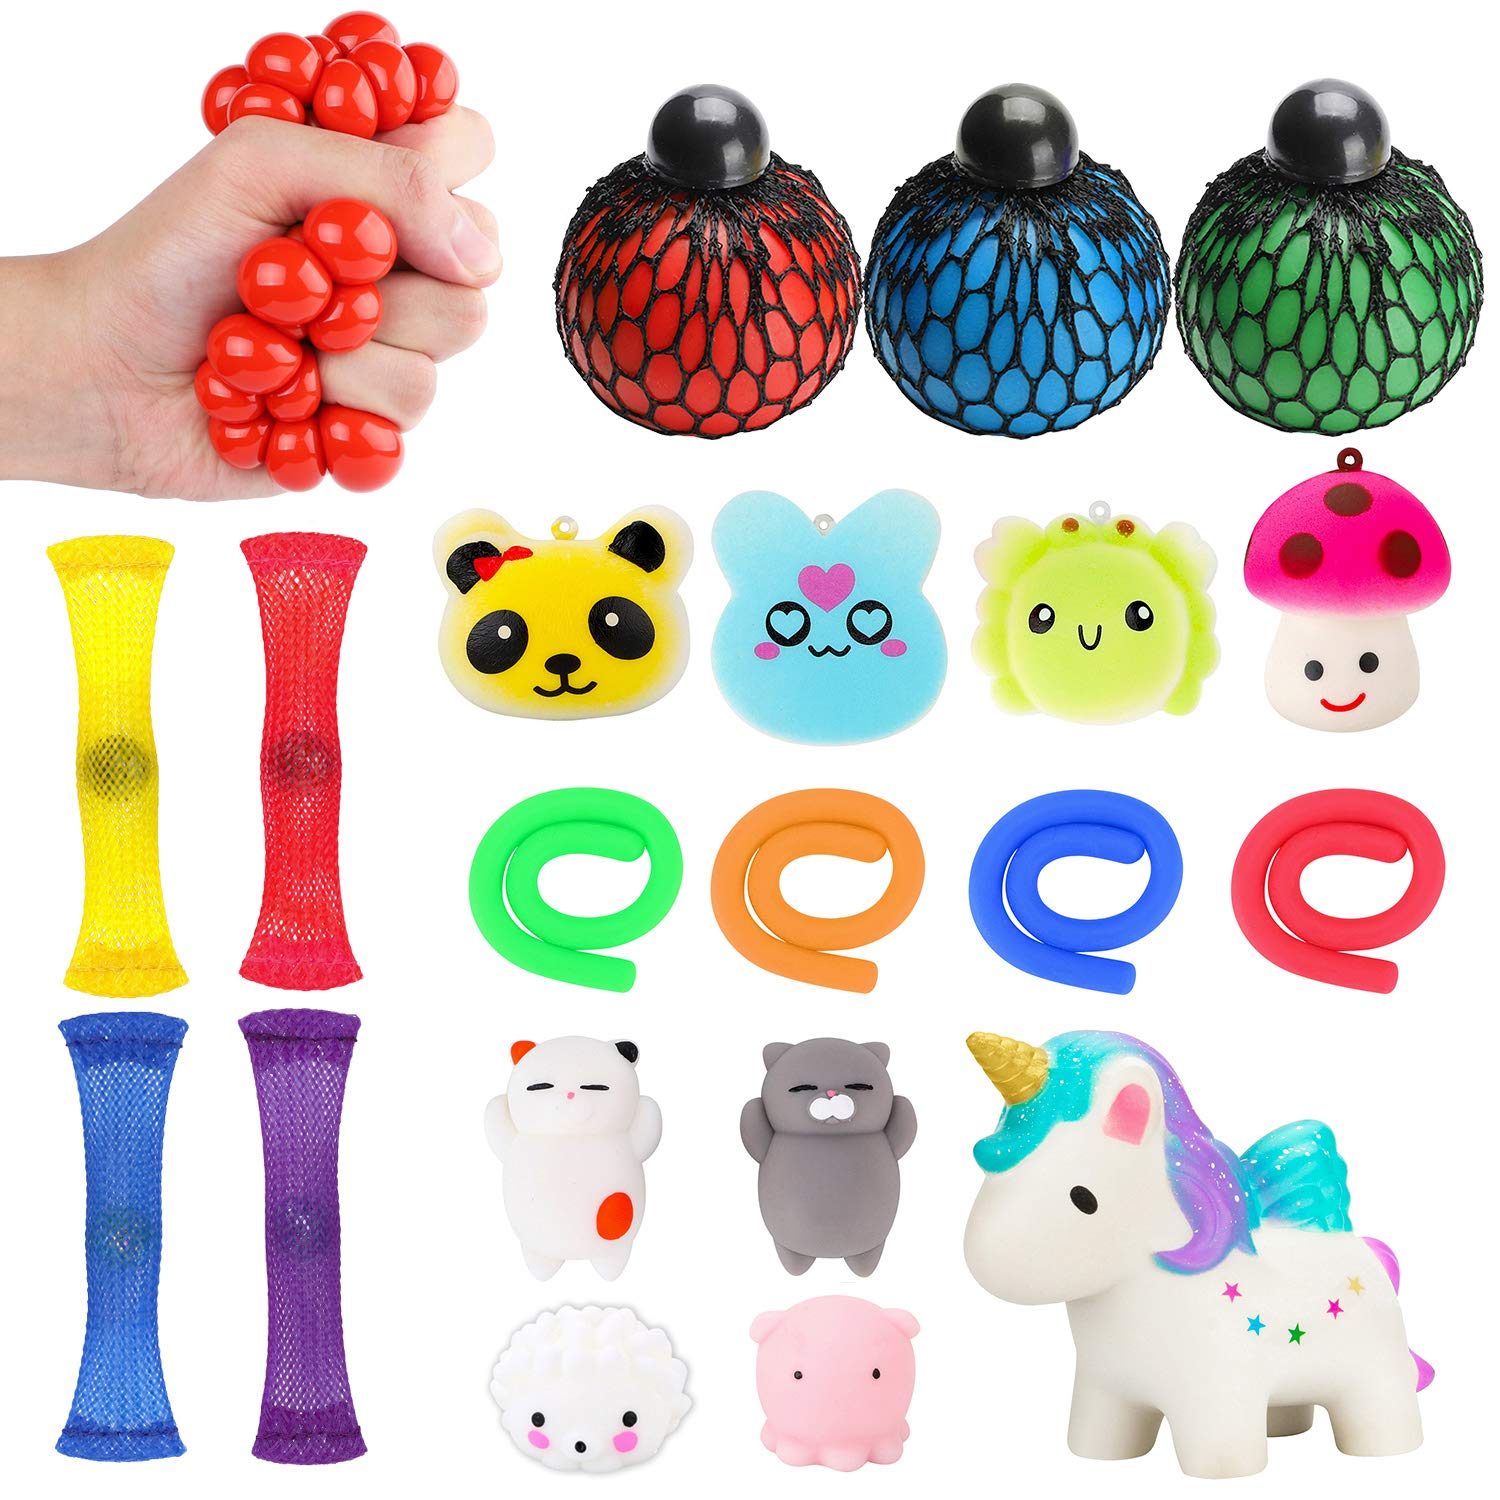 Has Helped with ADHD ADD Autism 30 Pack Sensory Fidget Toys Marble Figit Toy Value Bundle Assorted Stress Anxiety Relief Fidgets for Adult Kids Children Students